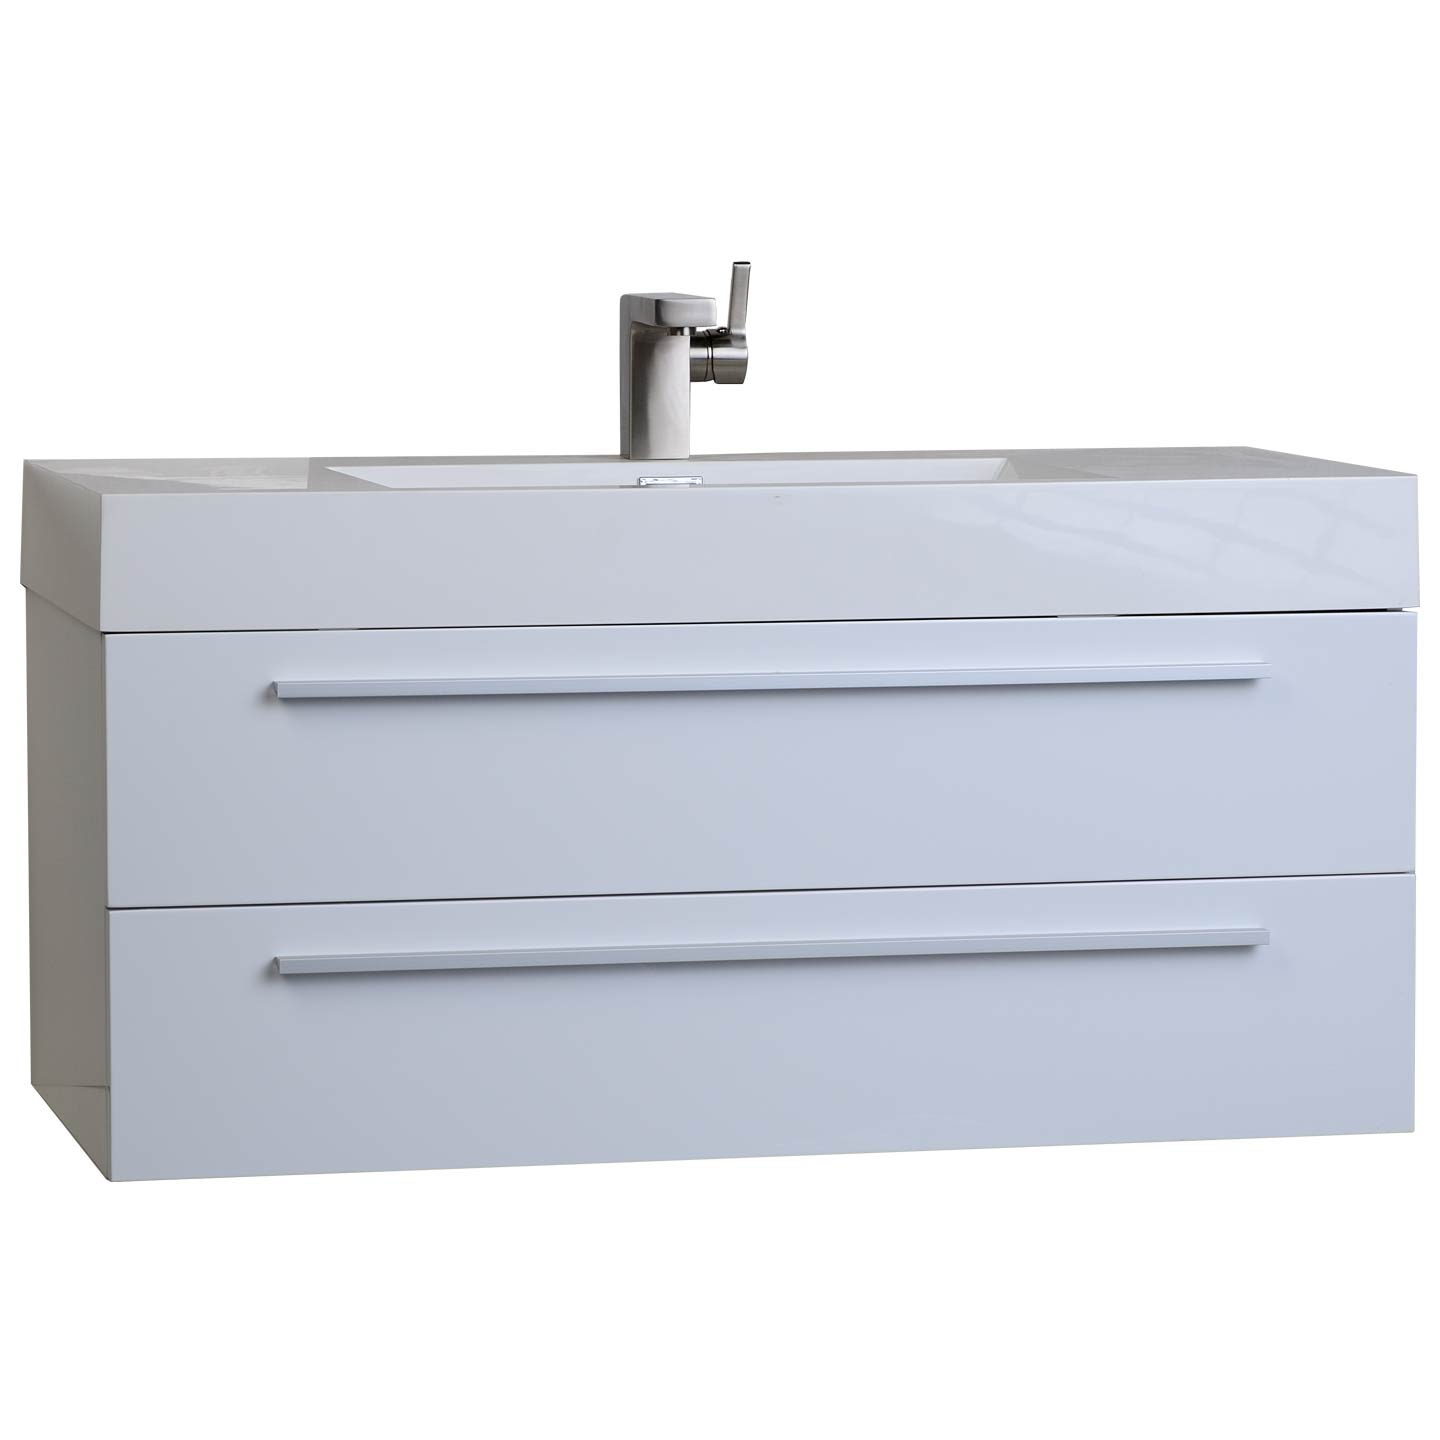 Where can i buy a bathroom vanity - 39 25 Wall Mount Contemporary Bathroom Vanity High Gloss White Tn T1000 Hgw